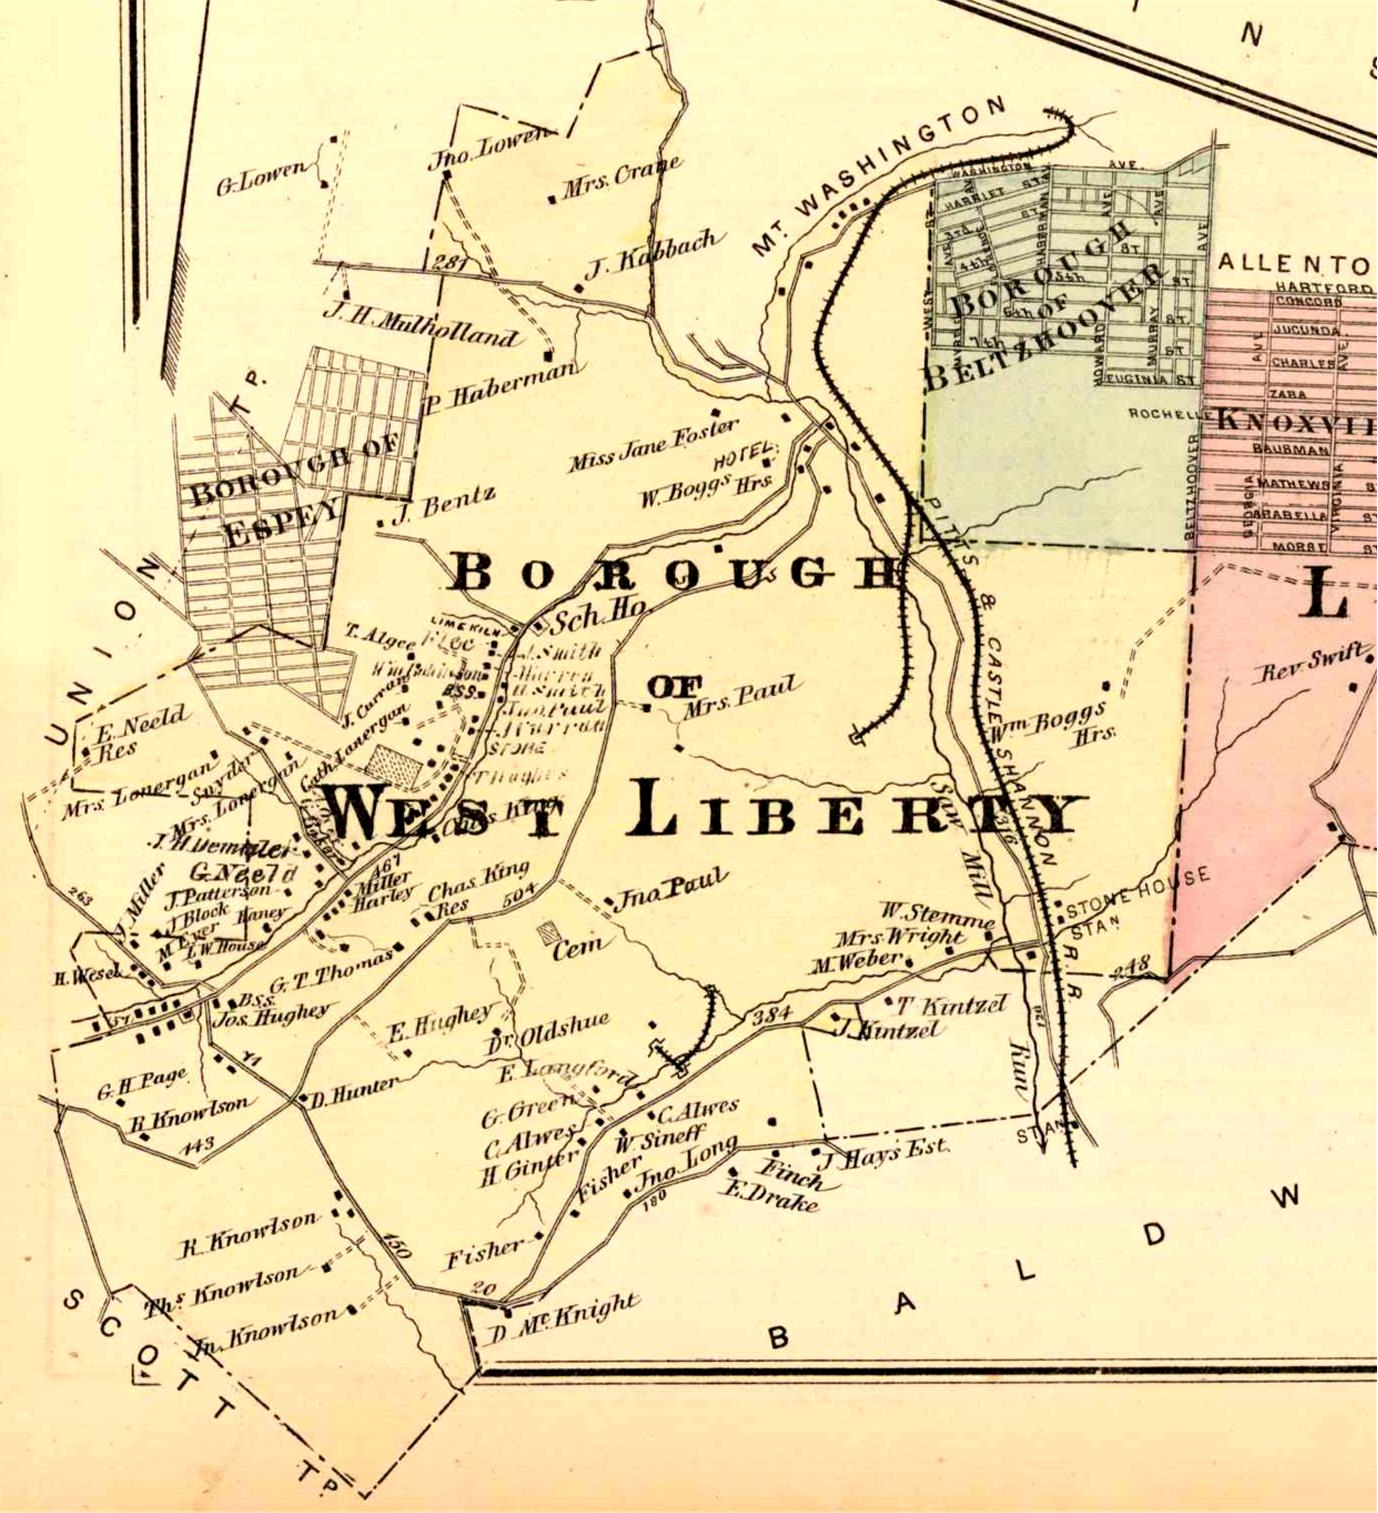 The History Of Brookline First 260 Years 1754 2014 1956 Bel Air Heater Wiring Diagram 1876 Map West Liberty Borough